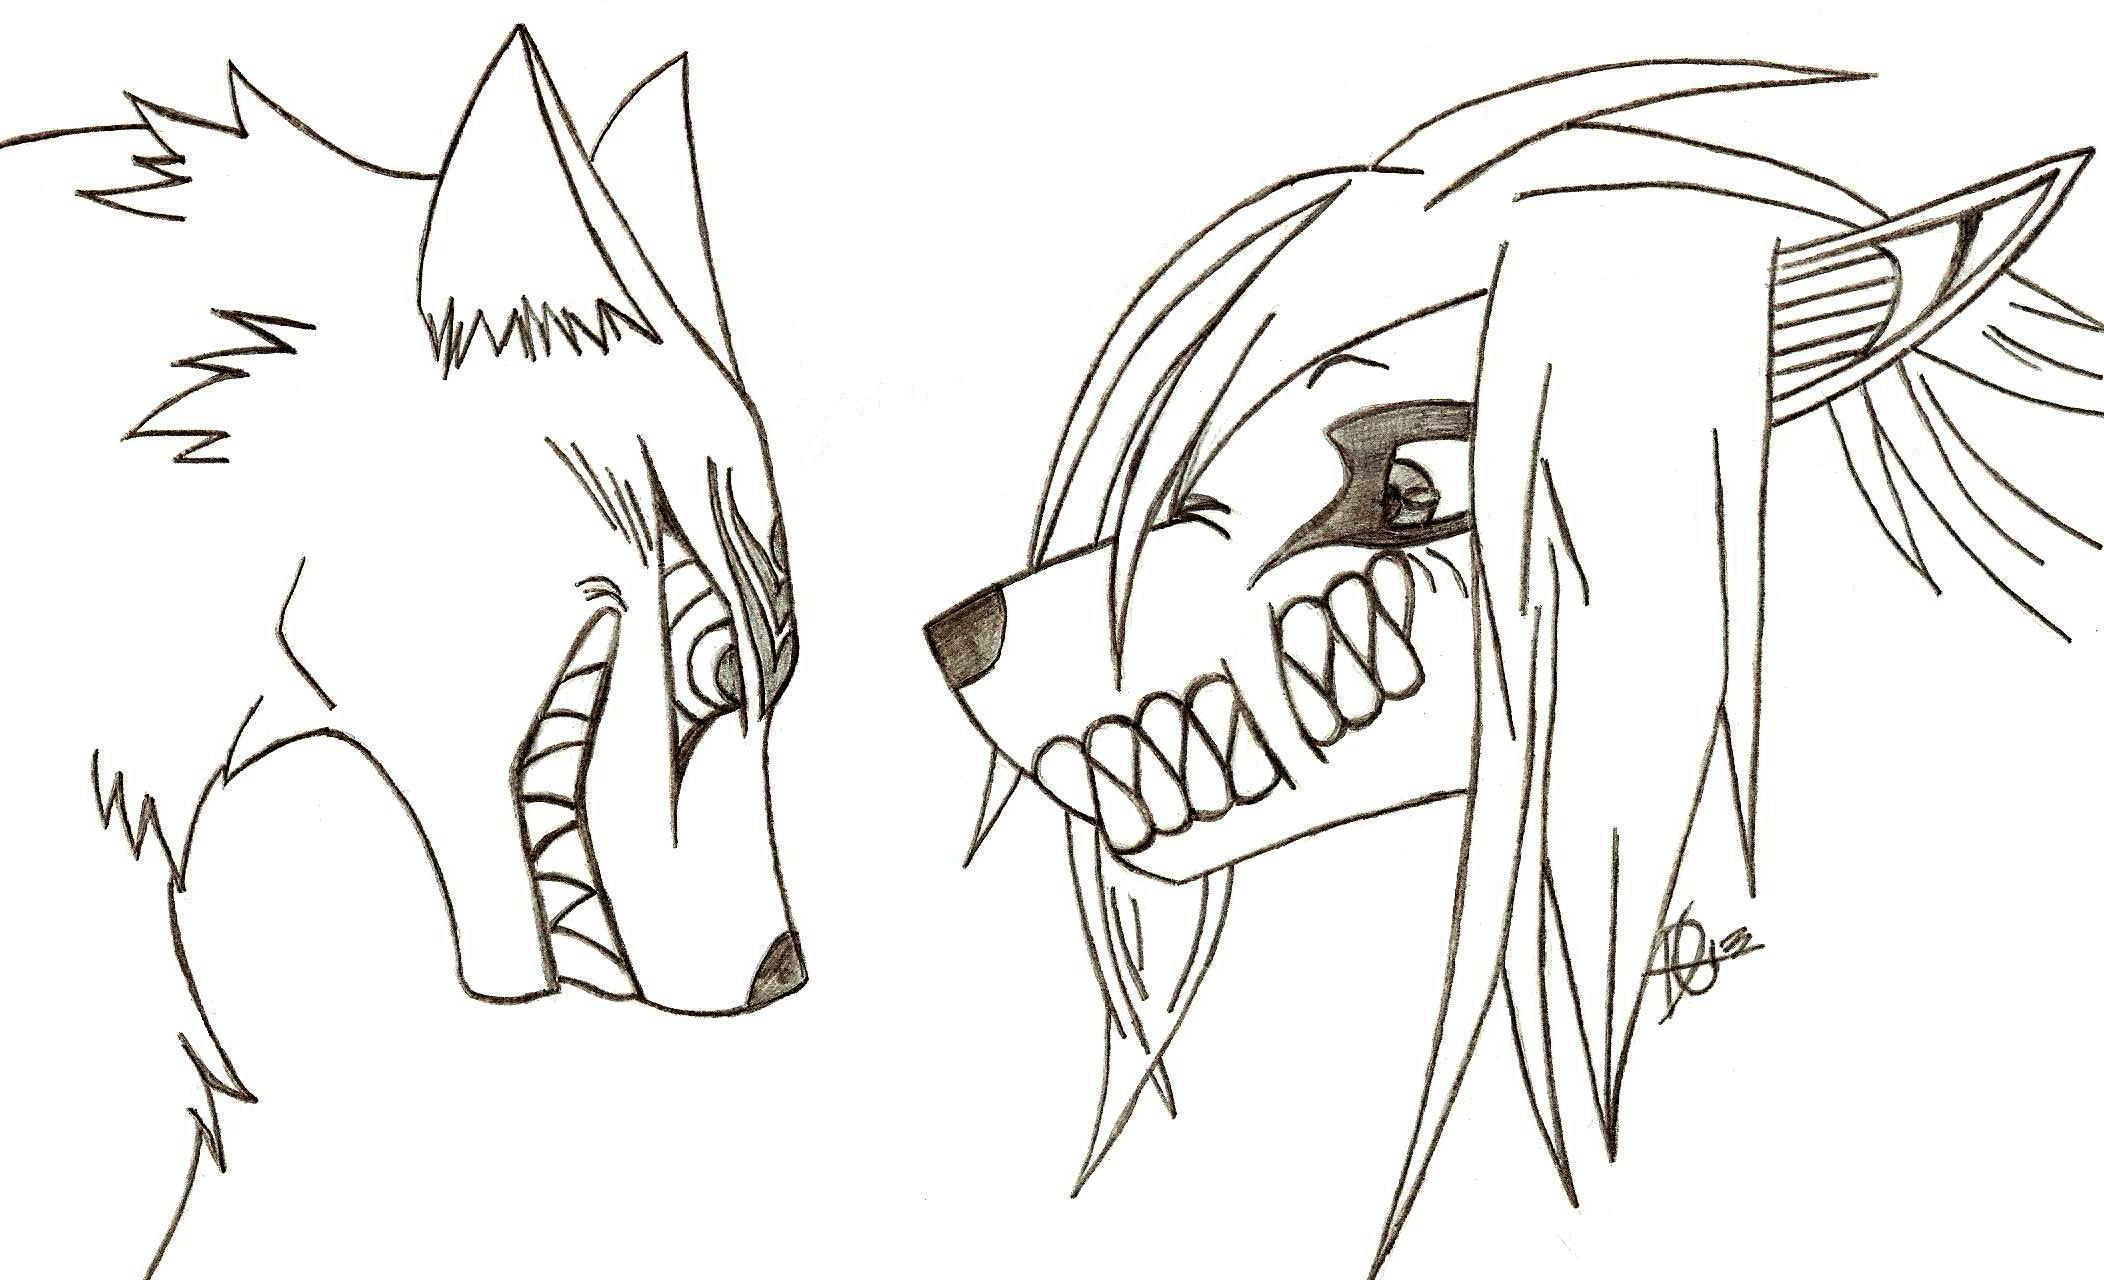 How To Draw Anime Wolves Pt1 By Sugarwolves Madarao And Eren Wolf  Crossover *gift* By Xmaikowolfx